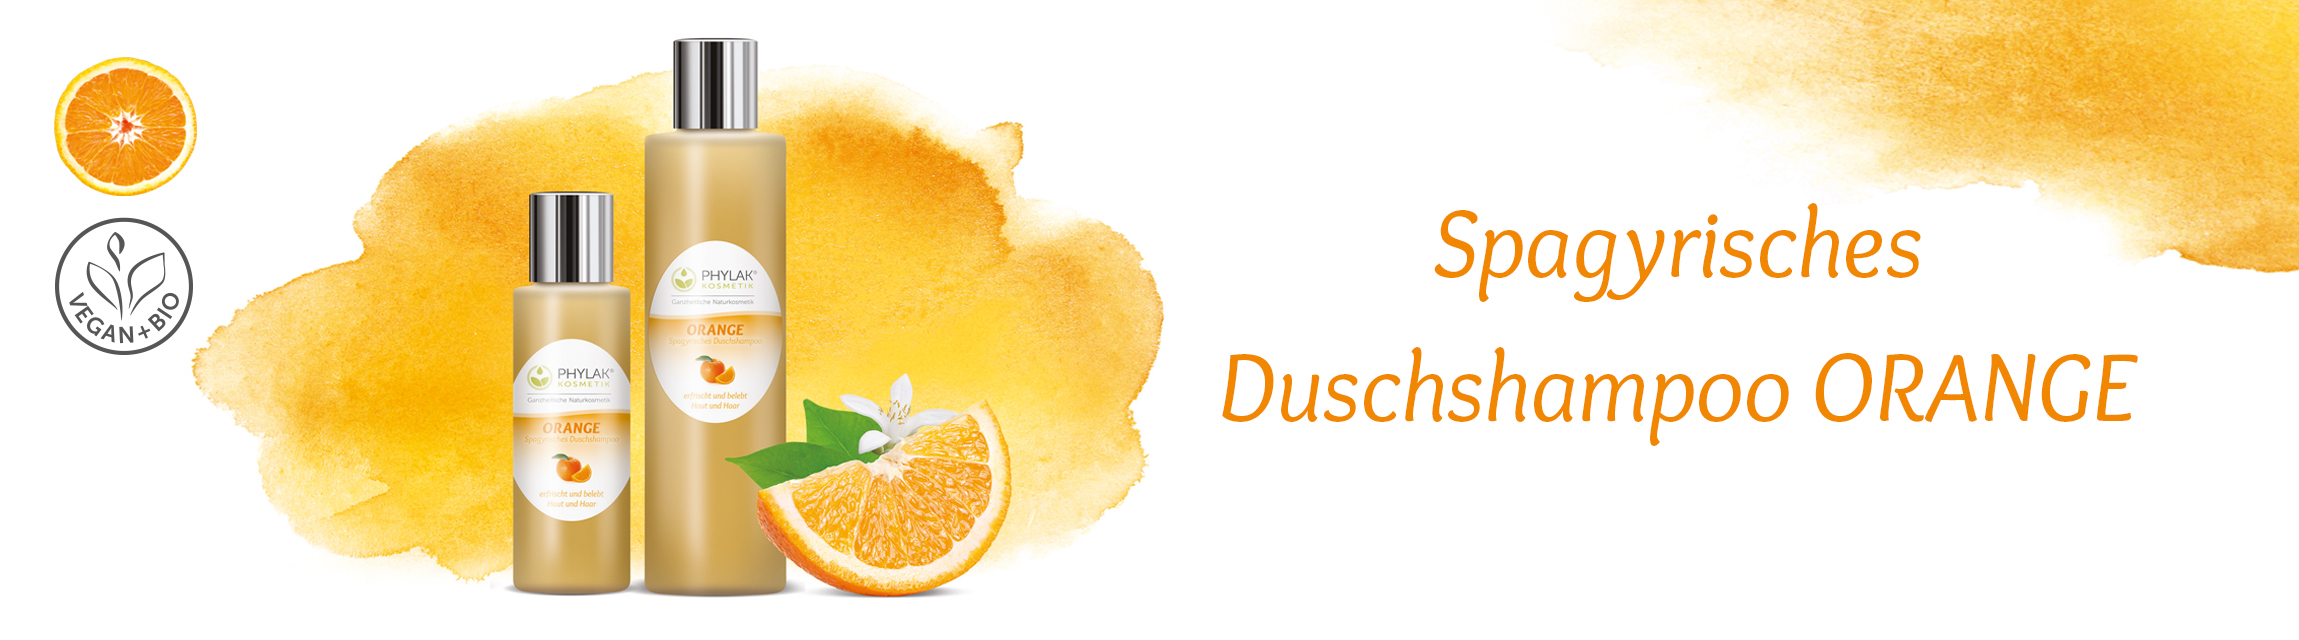 Spagyrisches Duschshampoo ORANGE